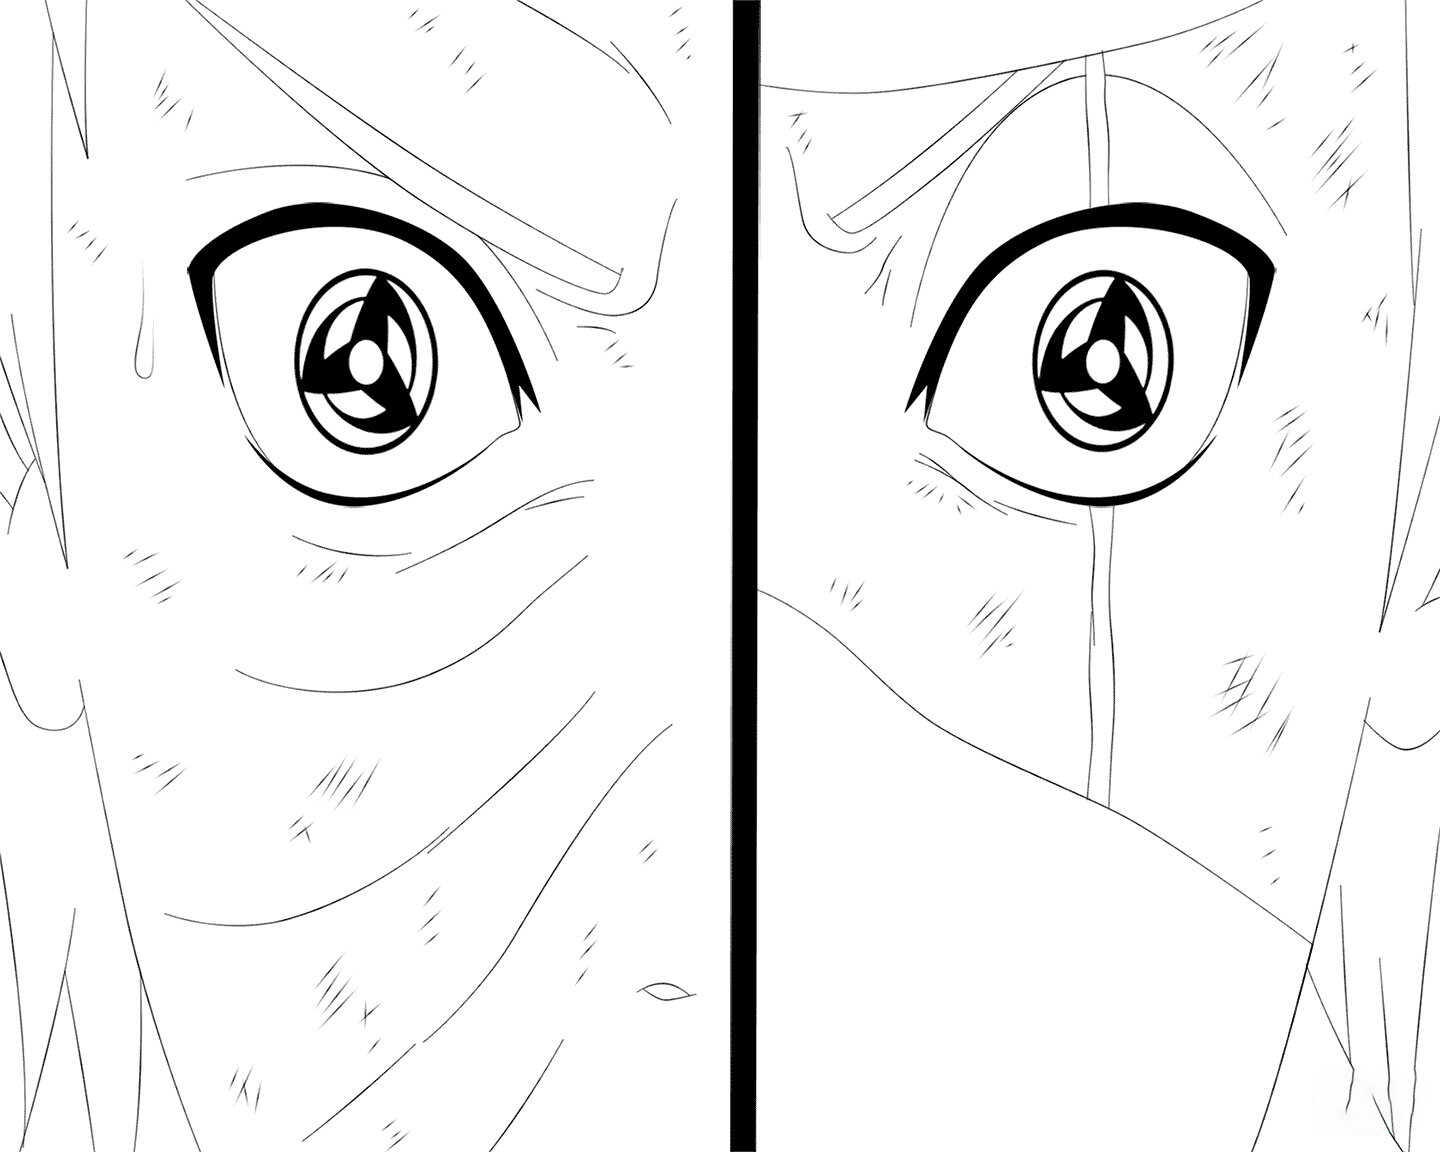 Obito and Kakashi perform Kamui on their eyes Coloring Page